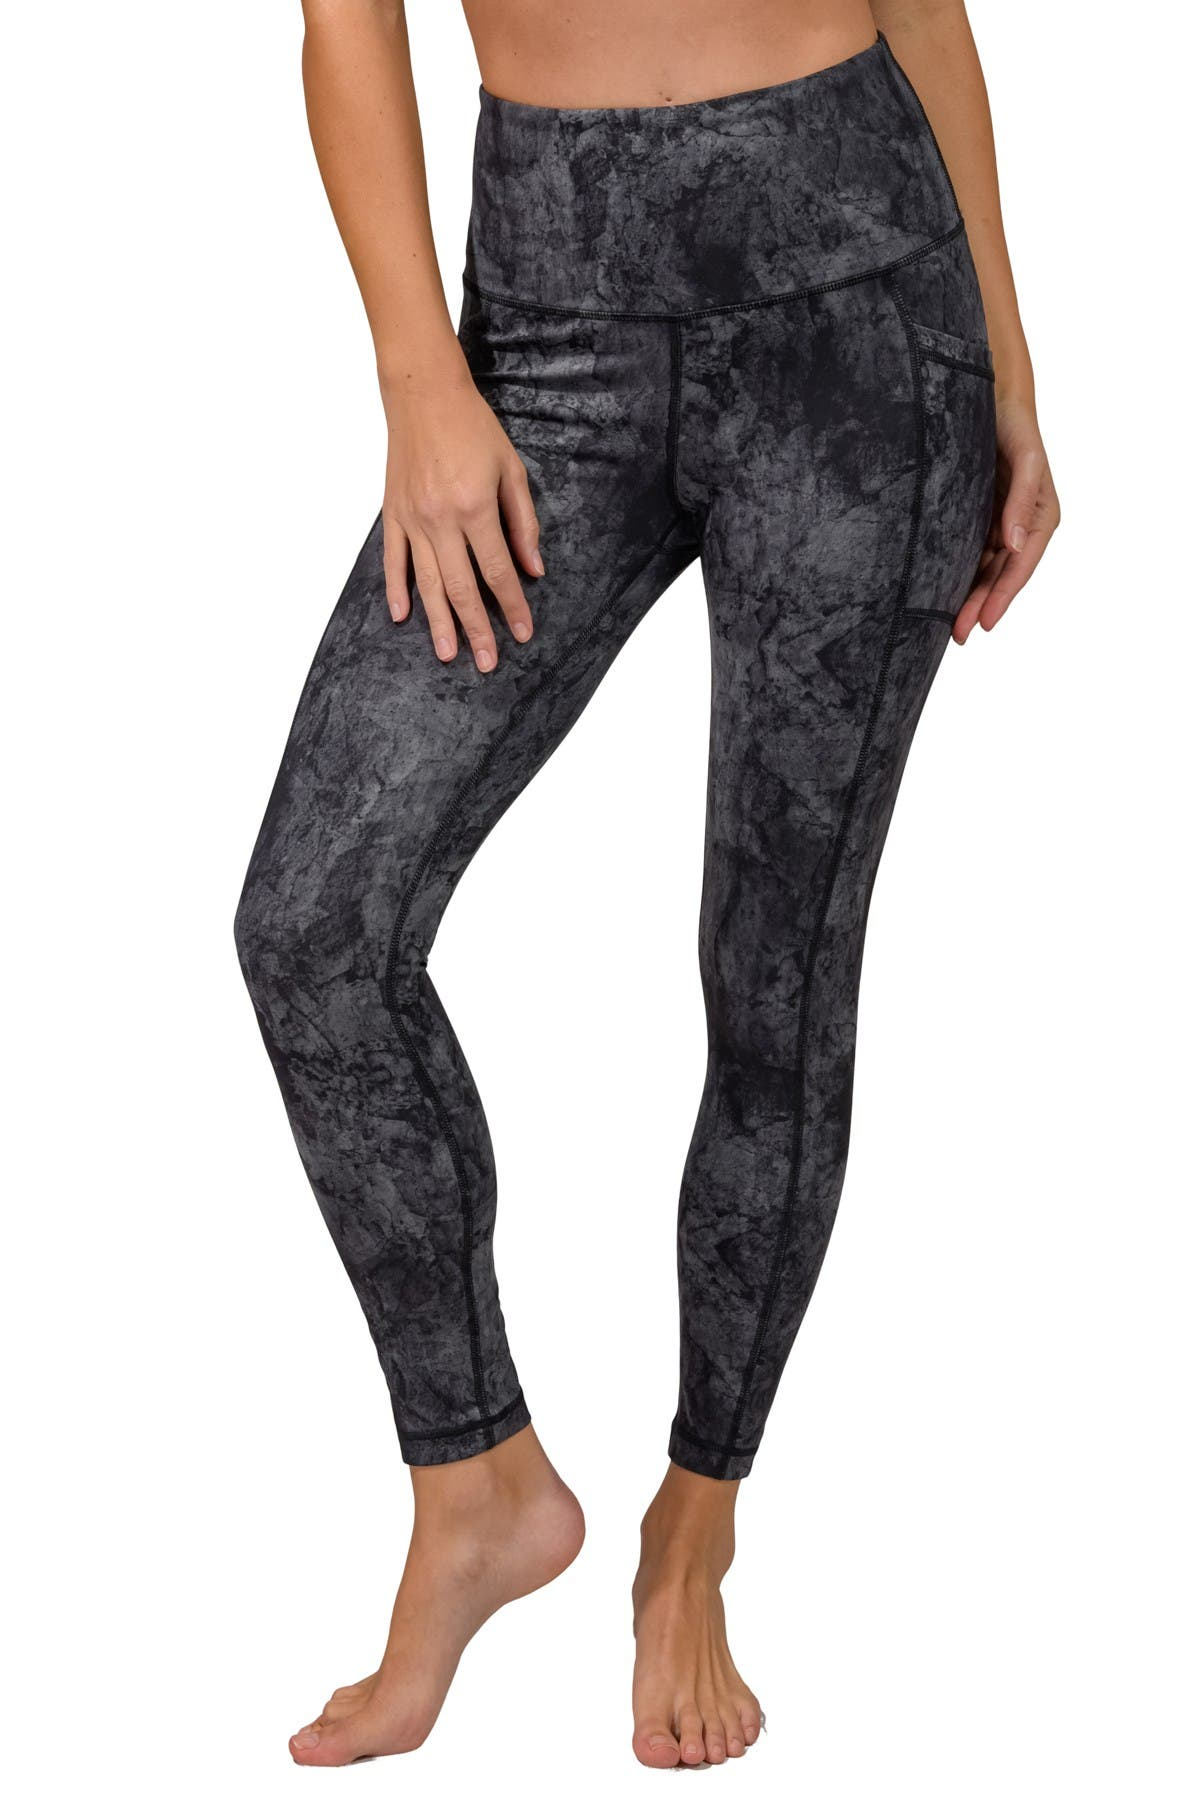 Image of 90 Degree By Reflex Marble Print High Rise Multi Pocket Ankle Leggings